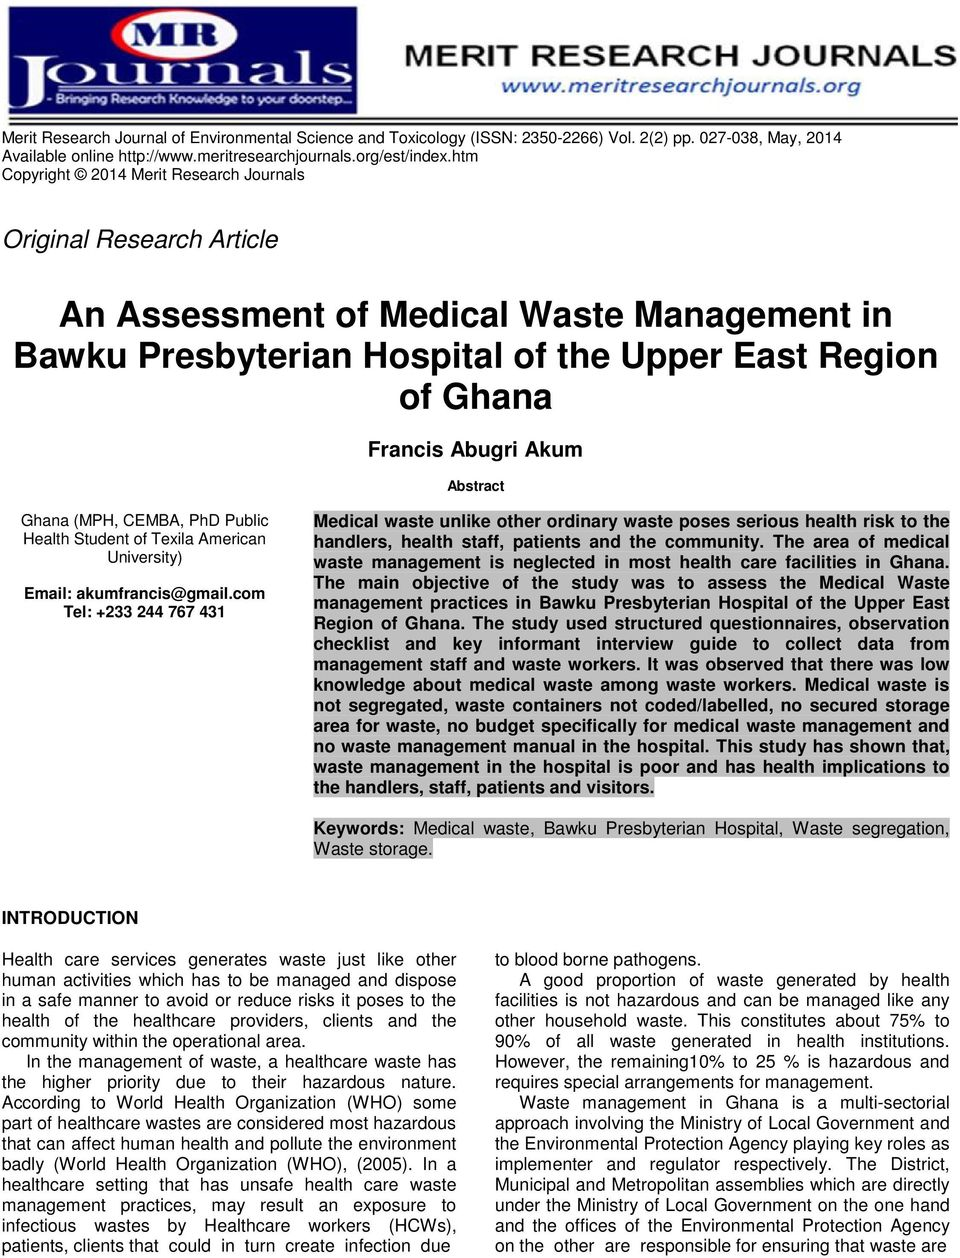 An Assessment of Medical Waste Management in Bawku